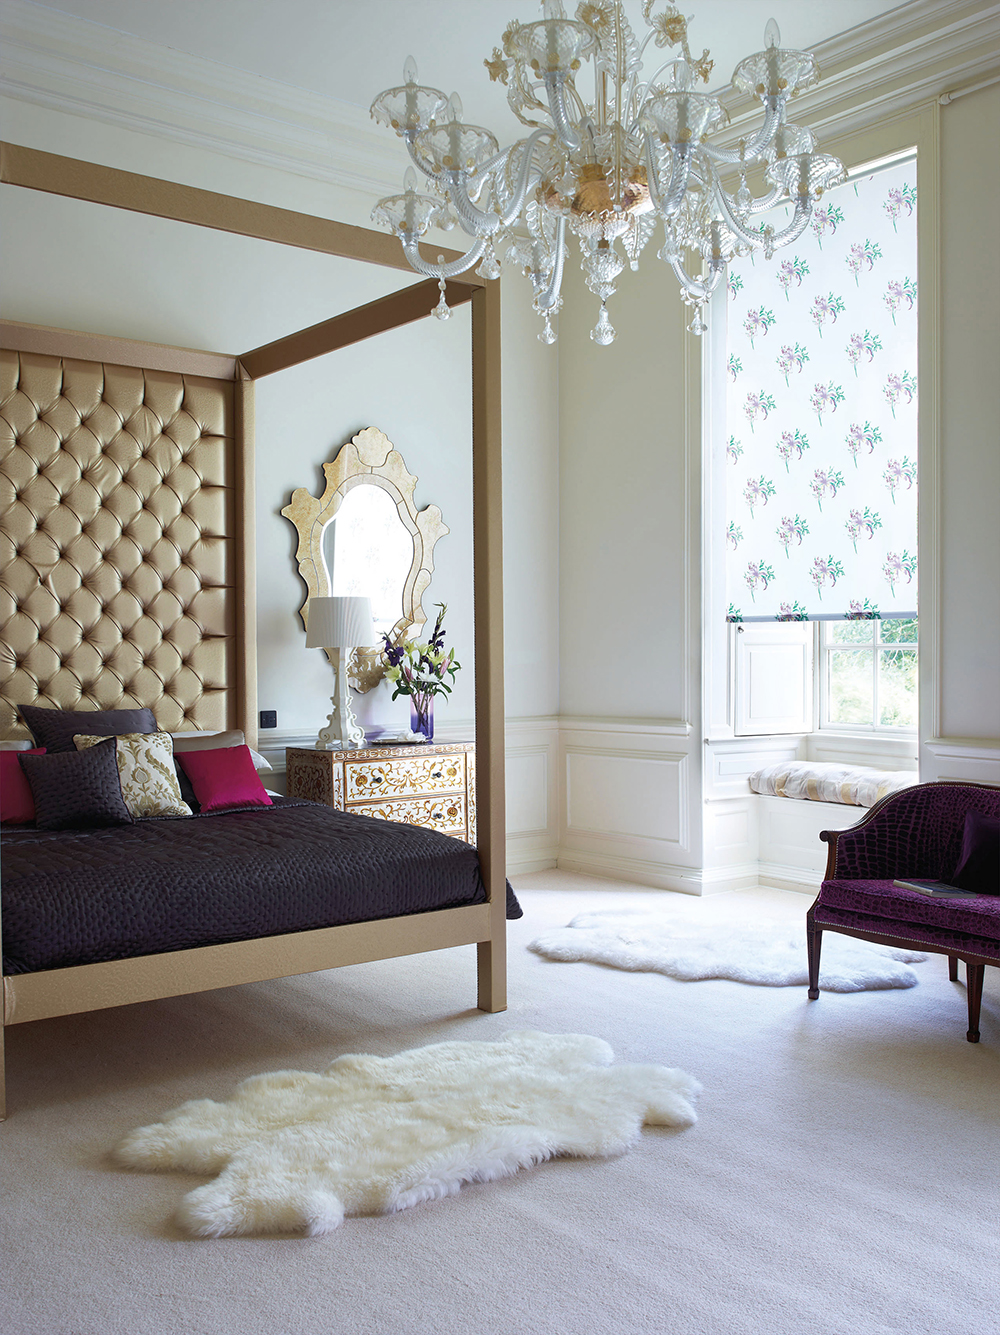 luxurious bedroom with four poster bed